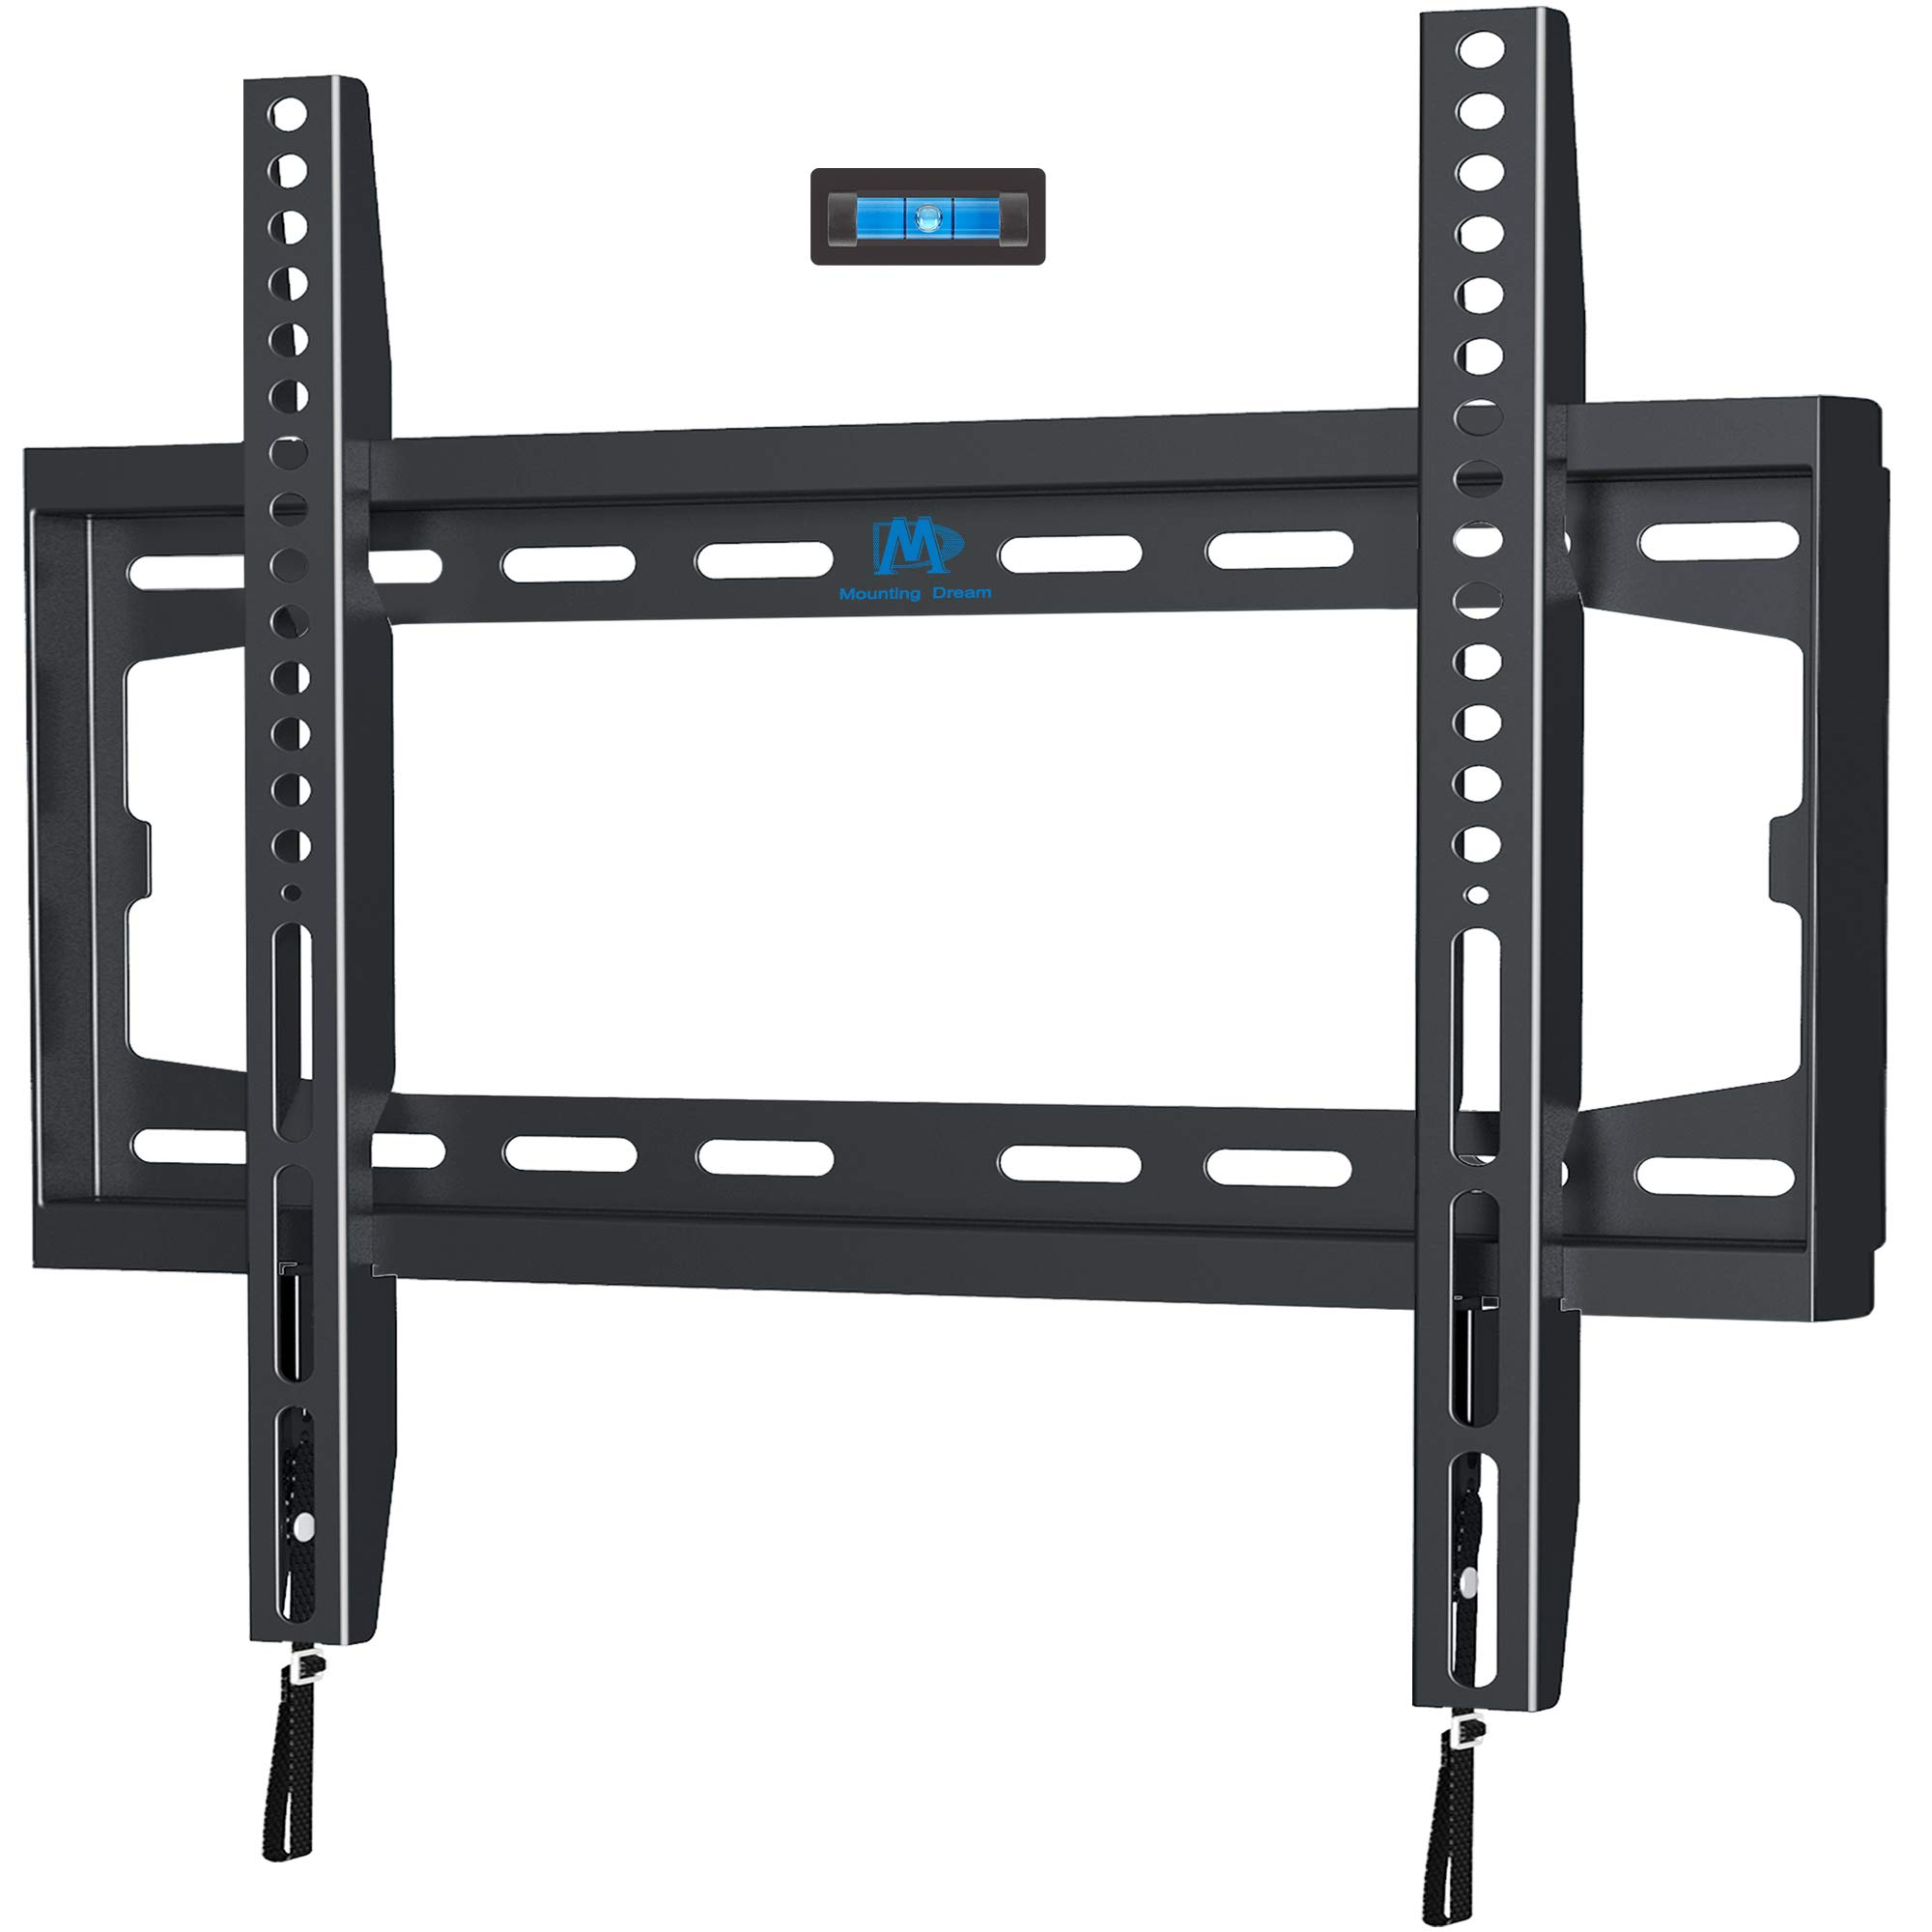 Mounting Dream MD2361-K TV Wall Mount Bracket For Most 32-50 Inch LED, LCD and Plasma TVs Up To VESA 400x400mm and 100 LBS Loading Capacity, Low Profile